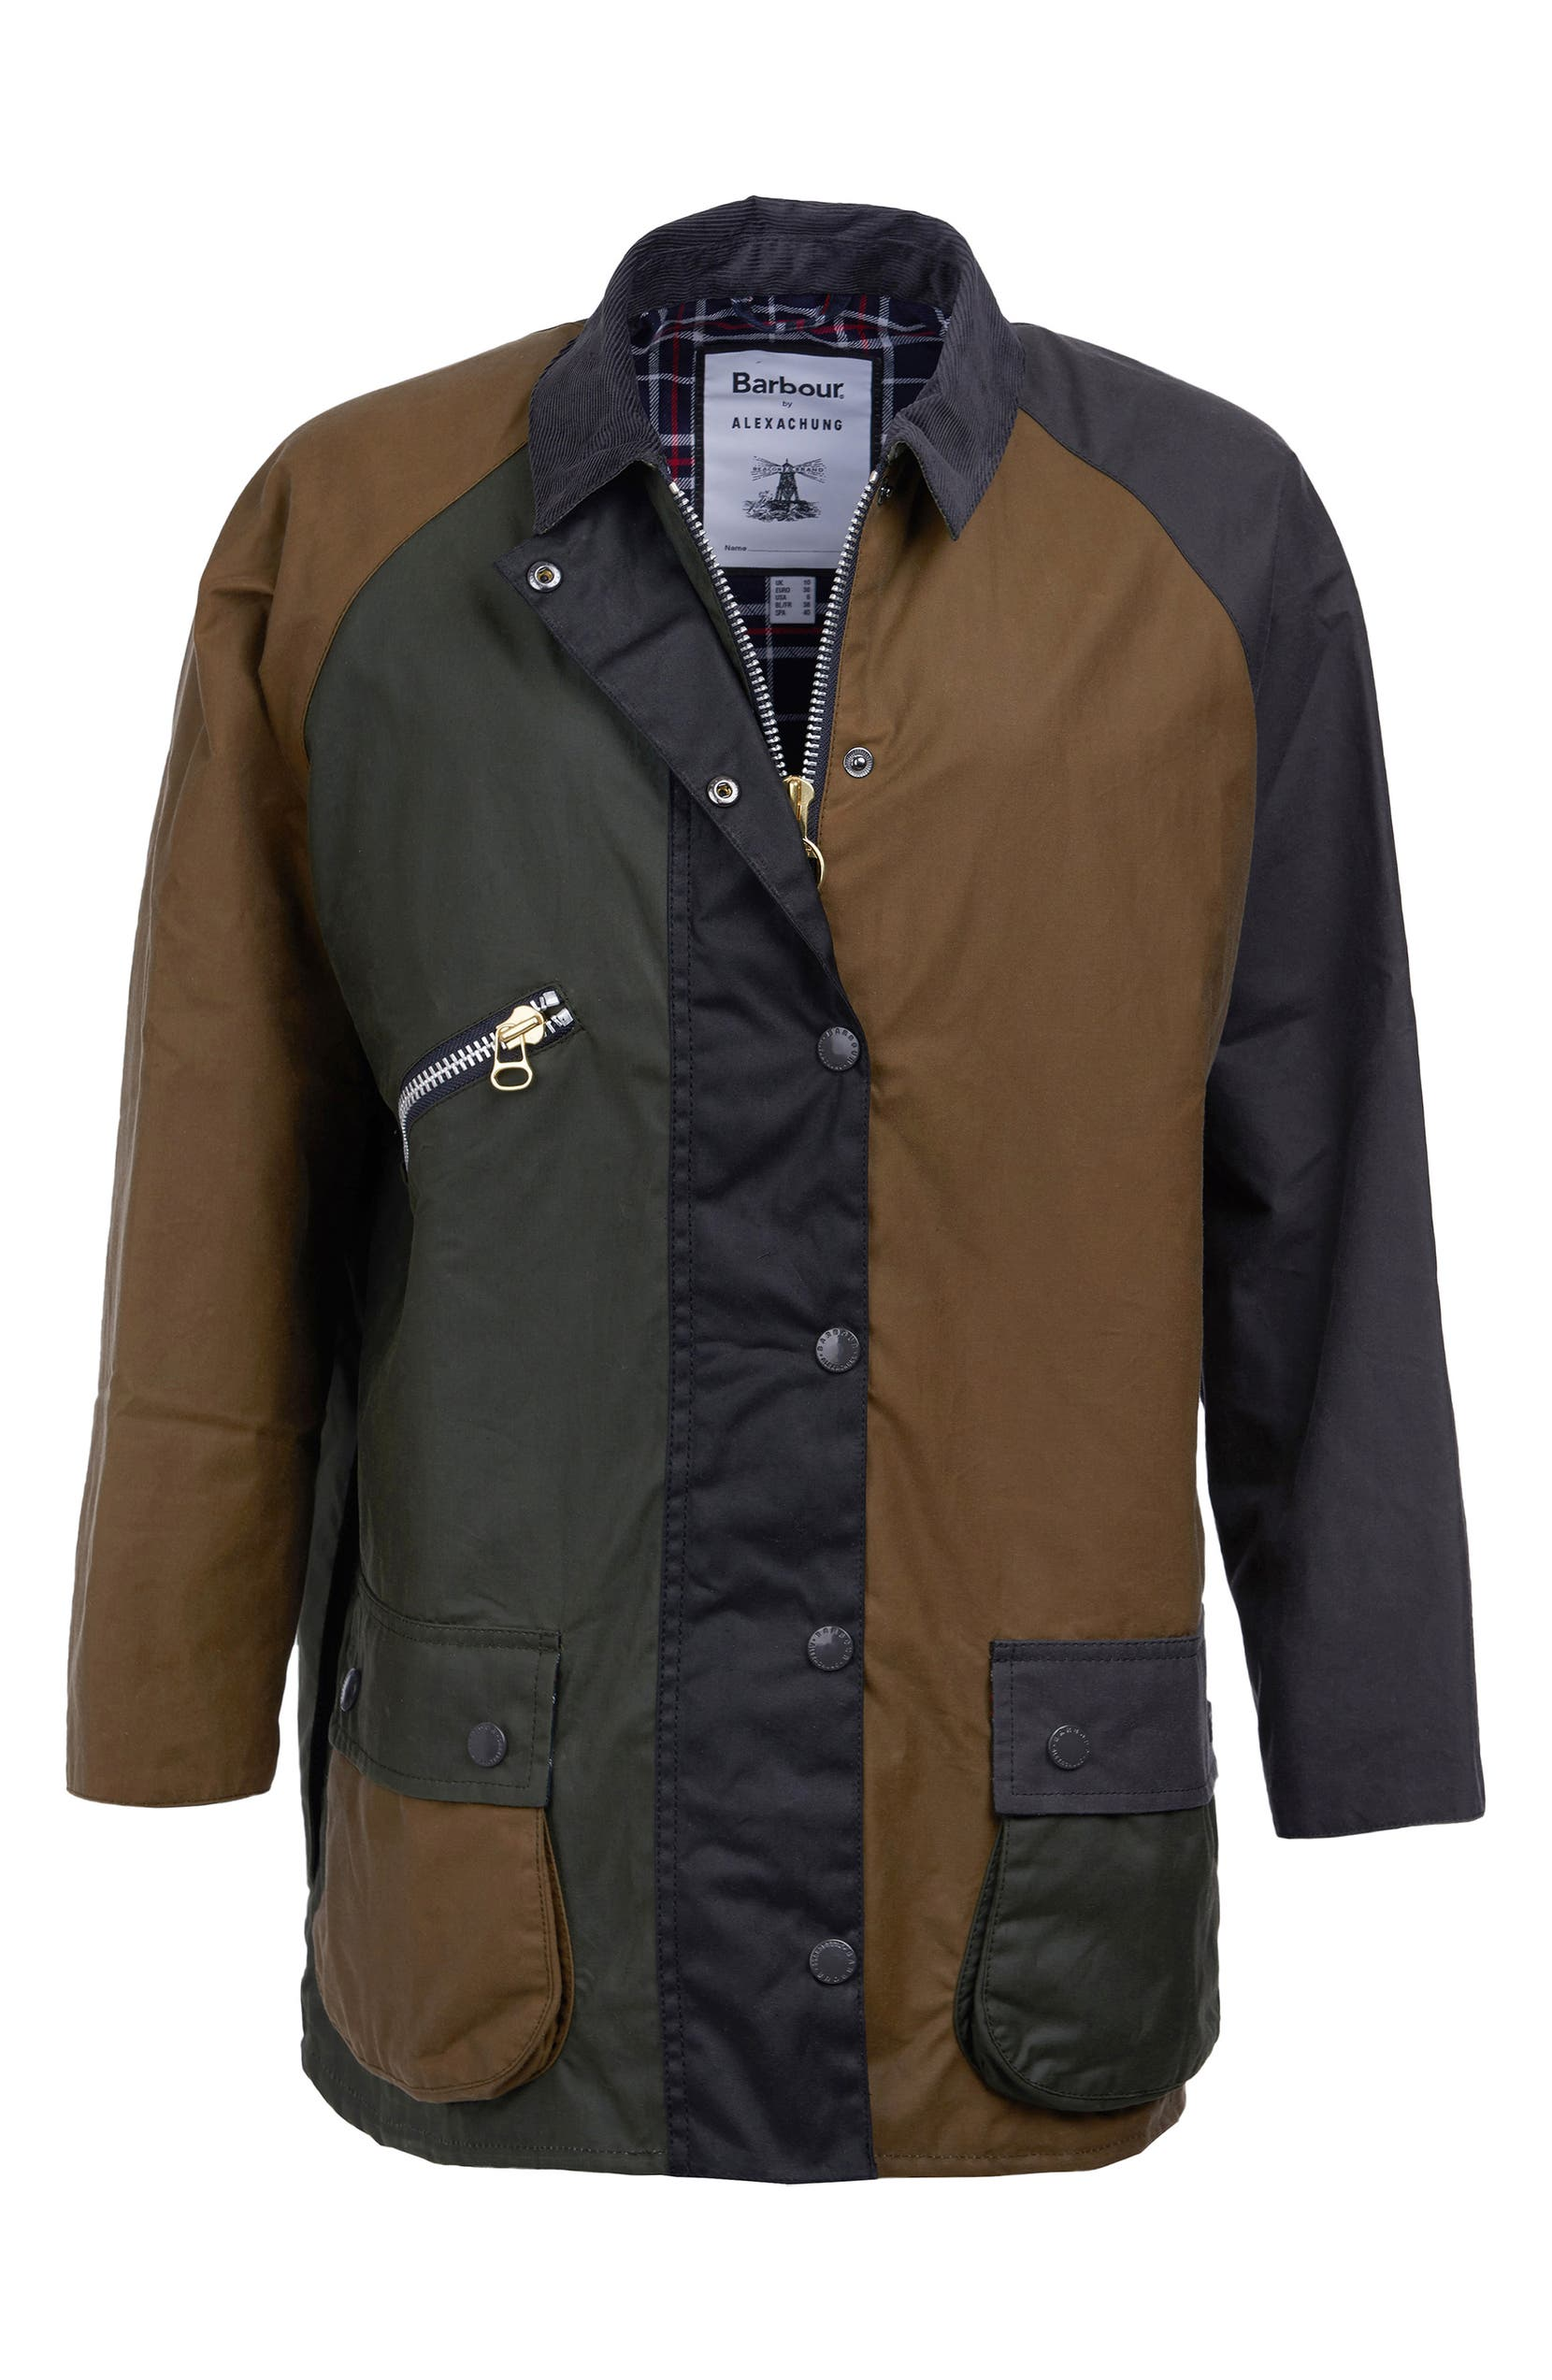 497304c5dd4f7 Barbour x ALEXACHUNG Patch Weatherproof Waxed Cotton Jacket | Nordstrom